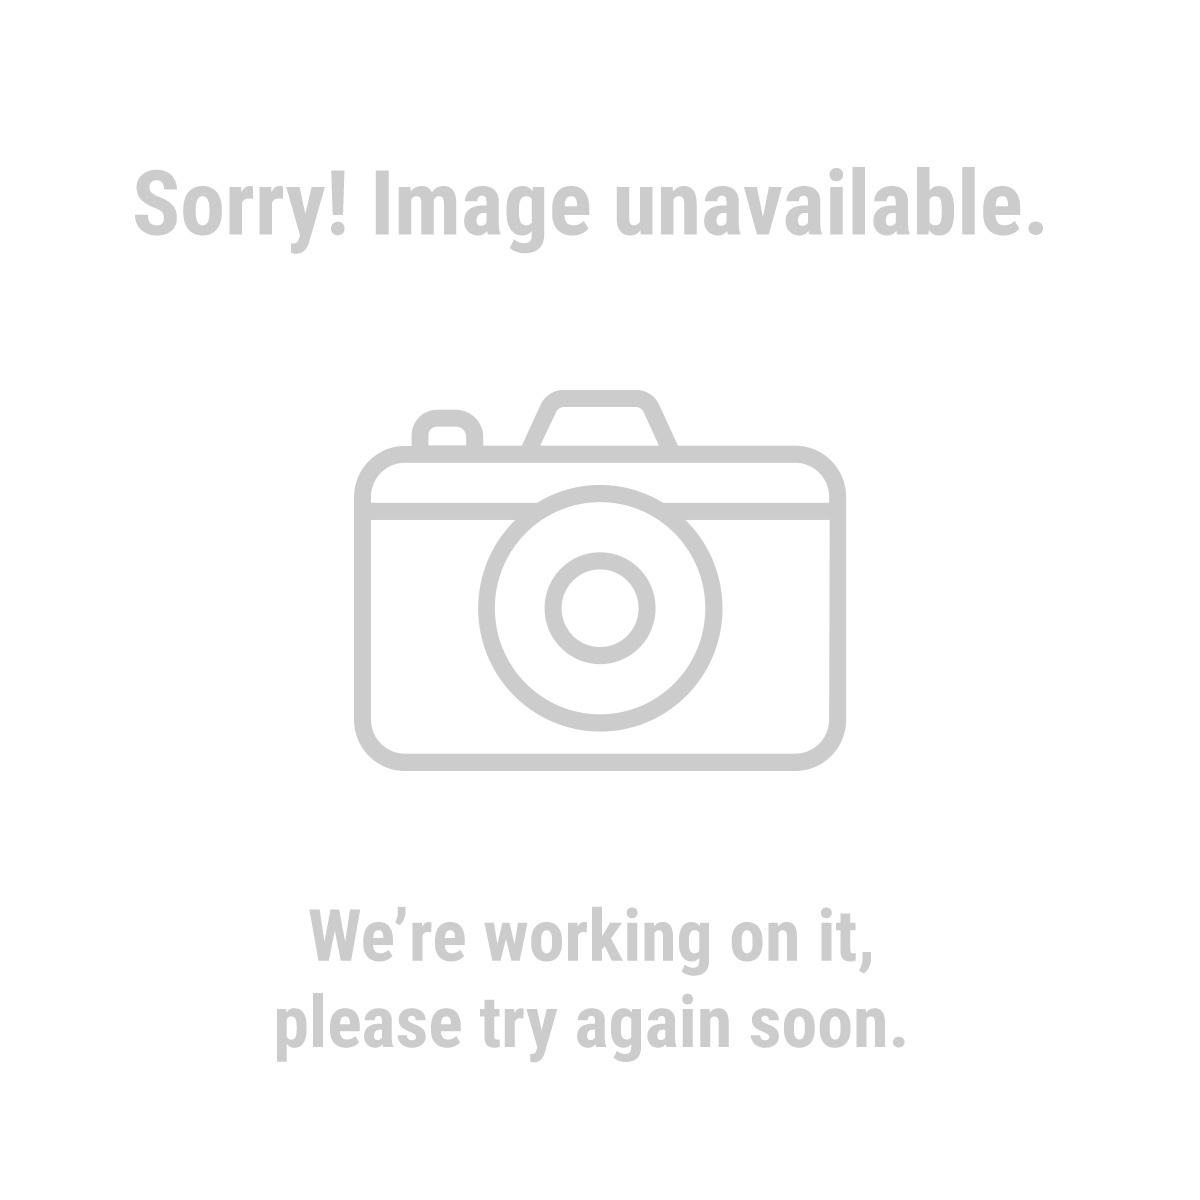 Storehouse 67672 150 Piece Solid Brass Wood Screw Assortment